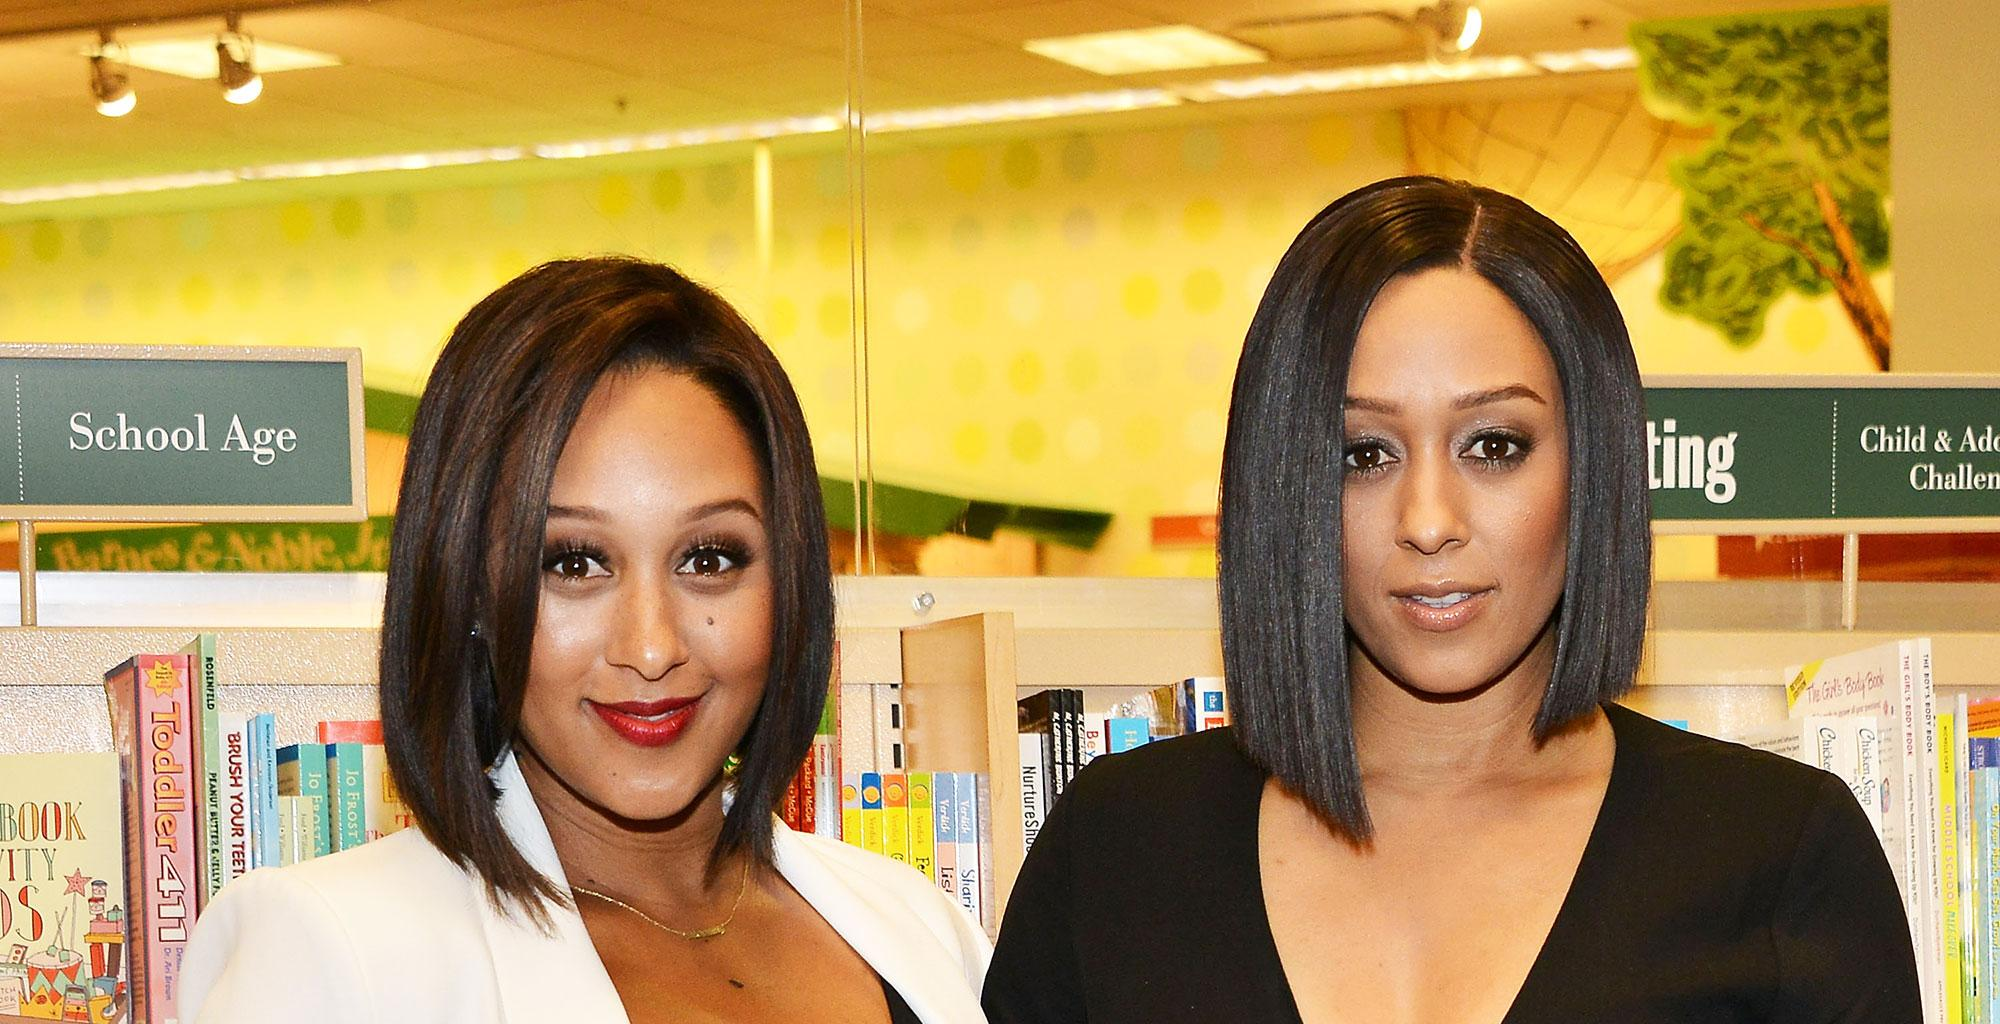 Tamera Mowry-Housley Shares Her Sentiments On The Black Lives Matter Movement -- The Real Host Hopes It Extends Past Posts